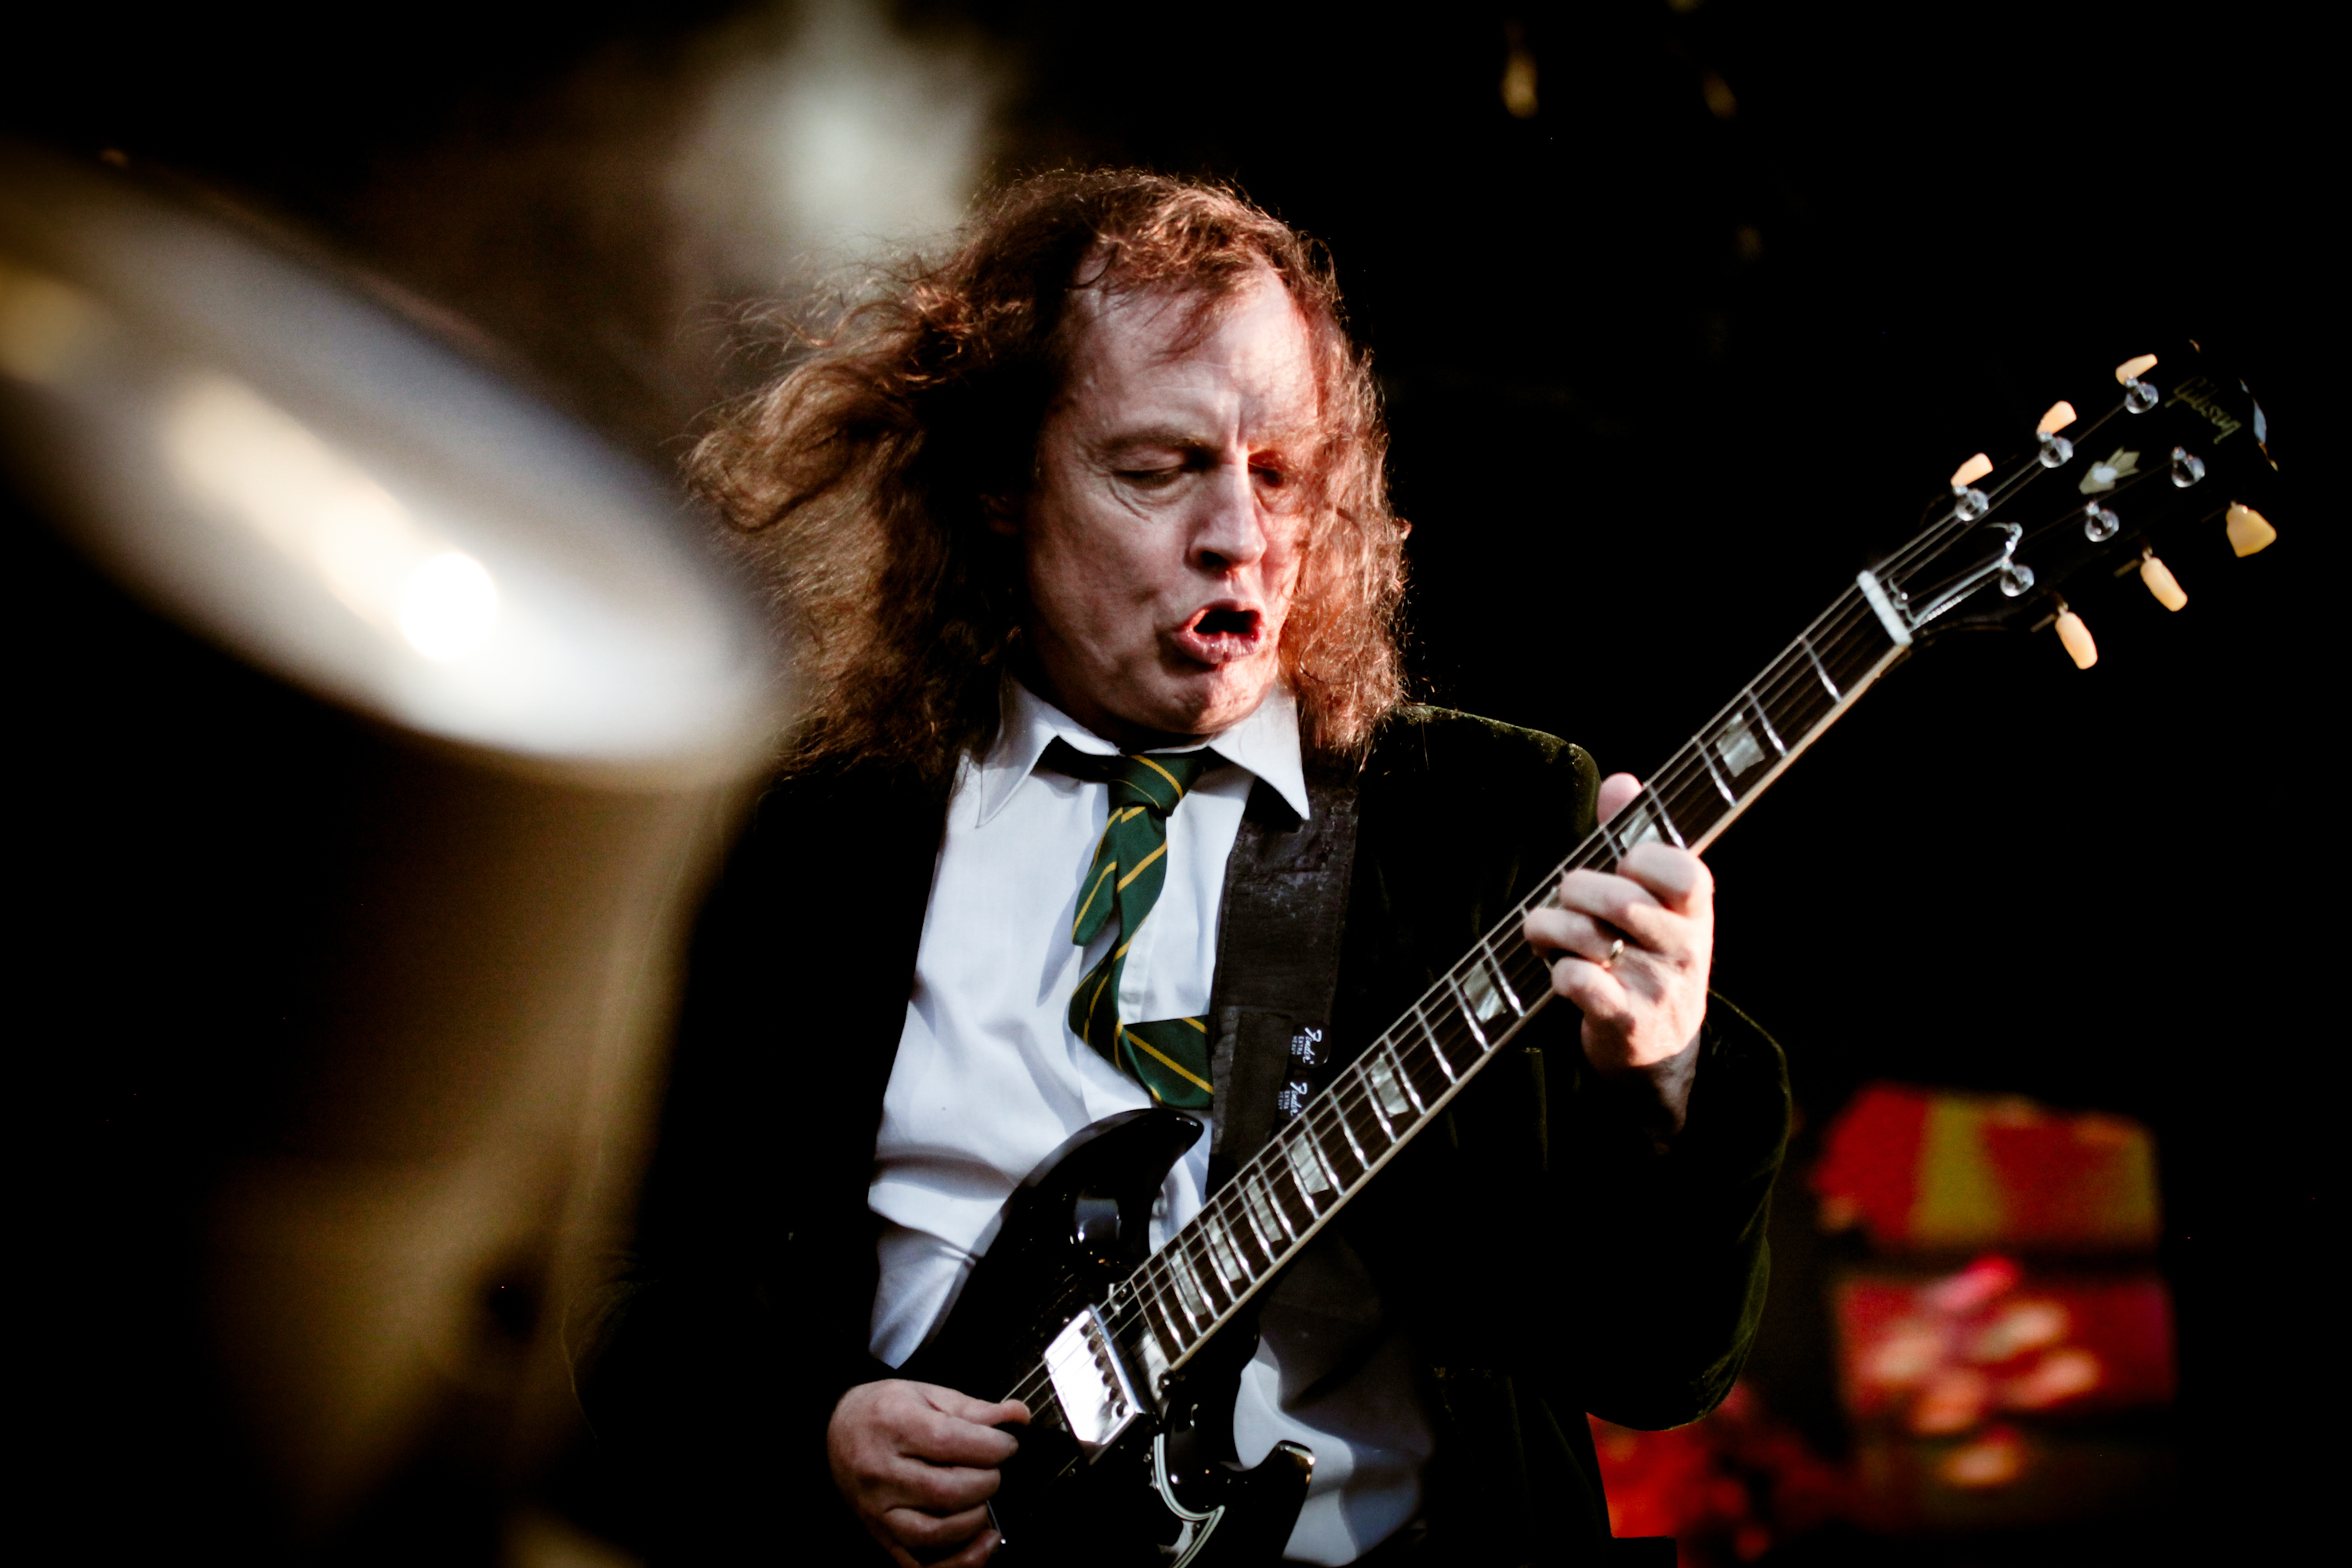 DONINGTON, UK - JUNE 11: Angus Young of AC/DC performs on stage at Download Festival on June 11, 2010 in Donington, UK. (Phot